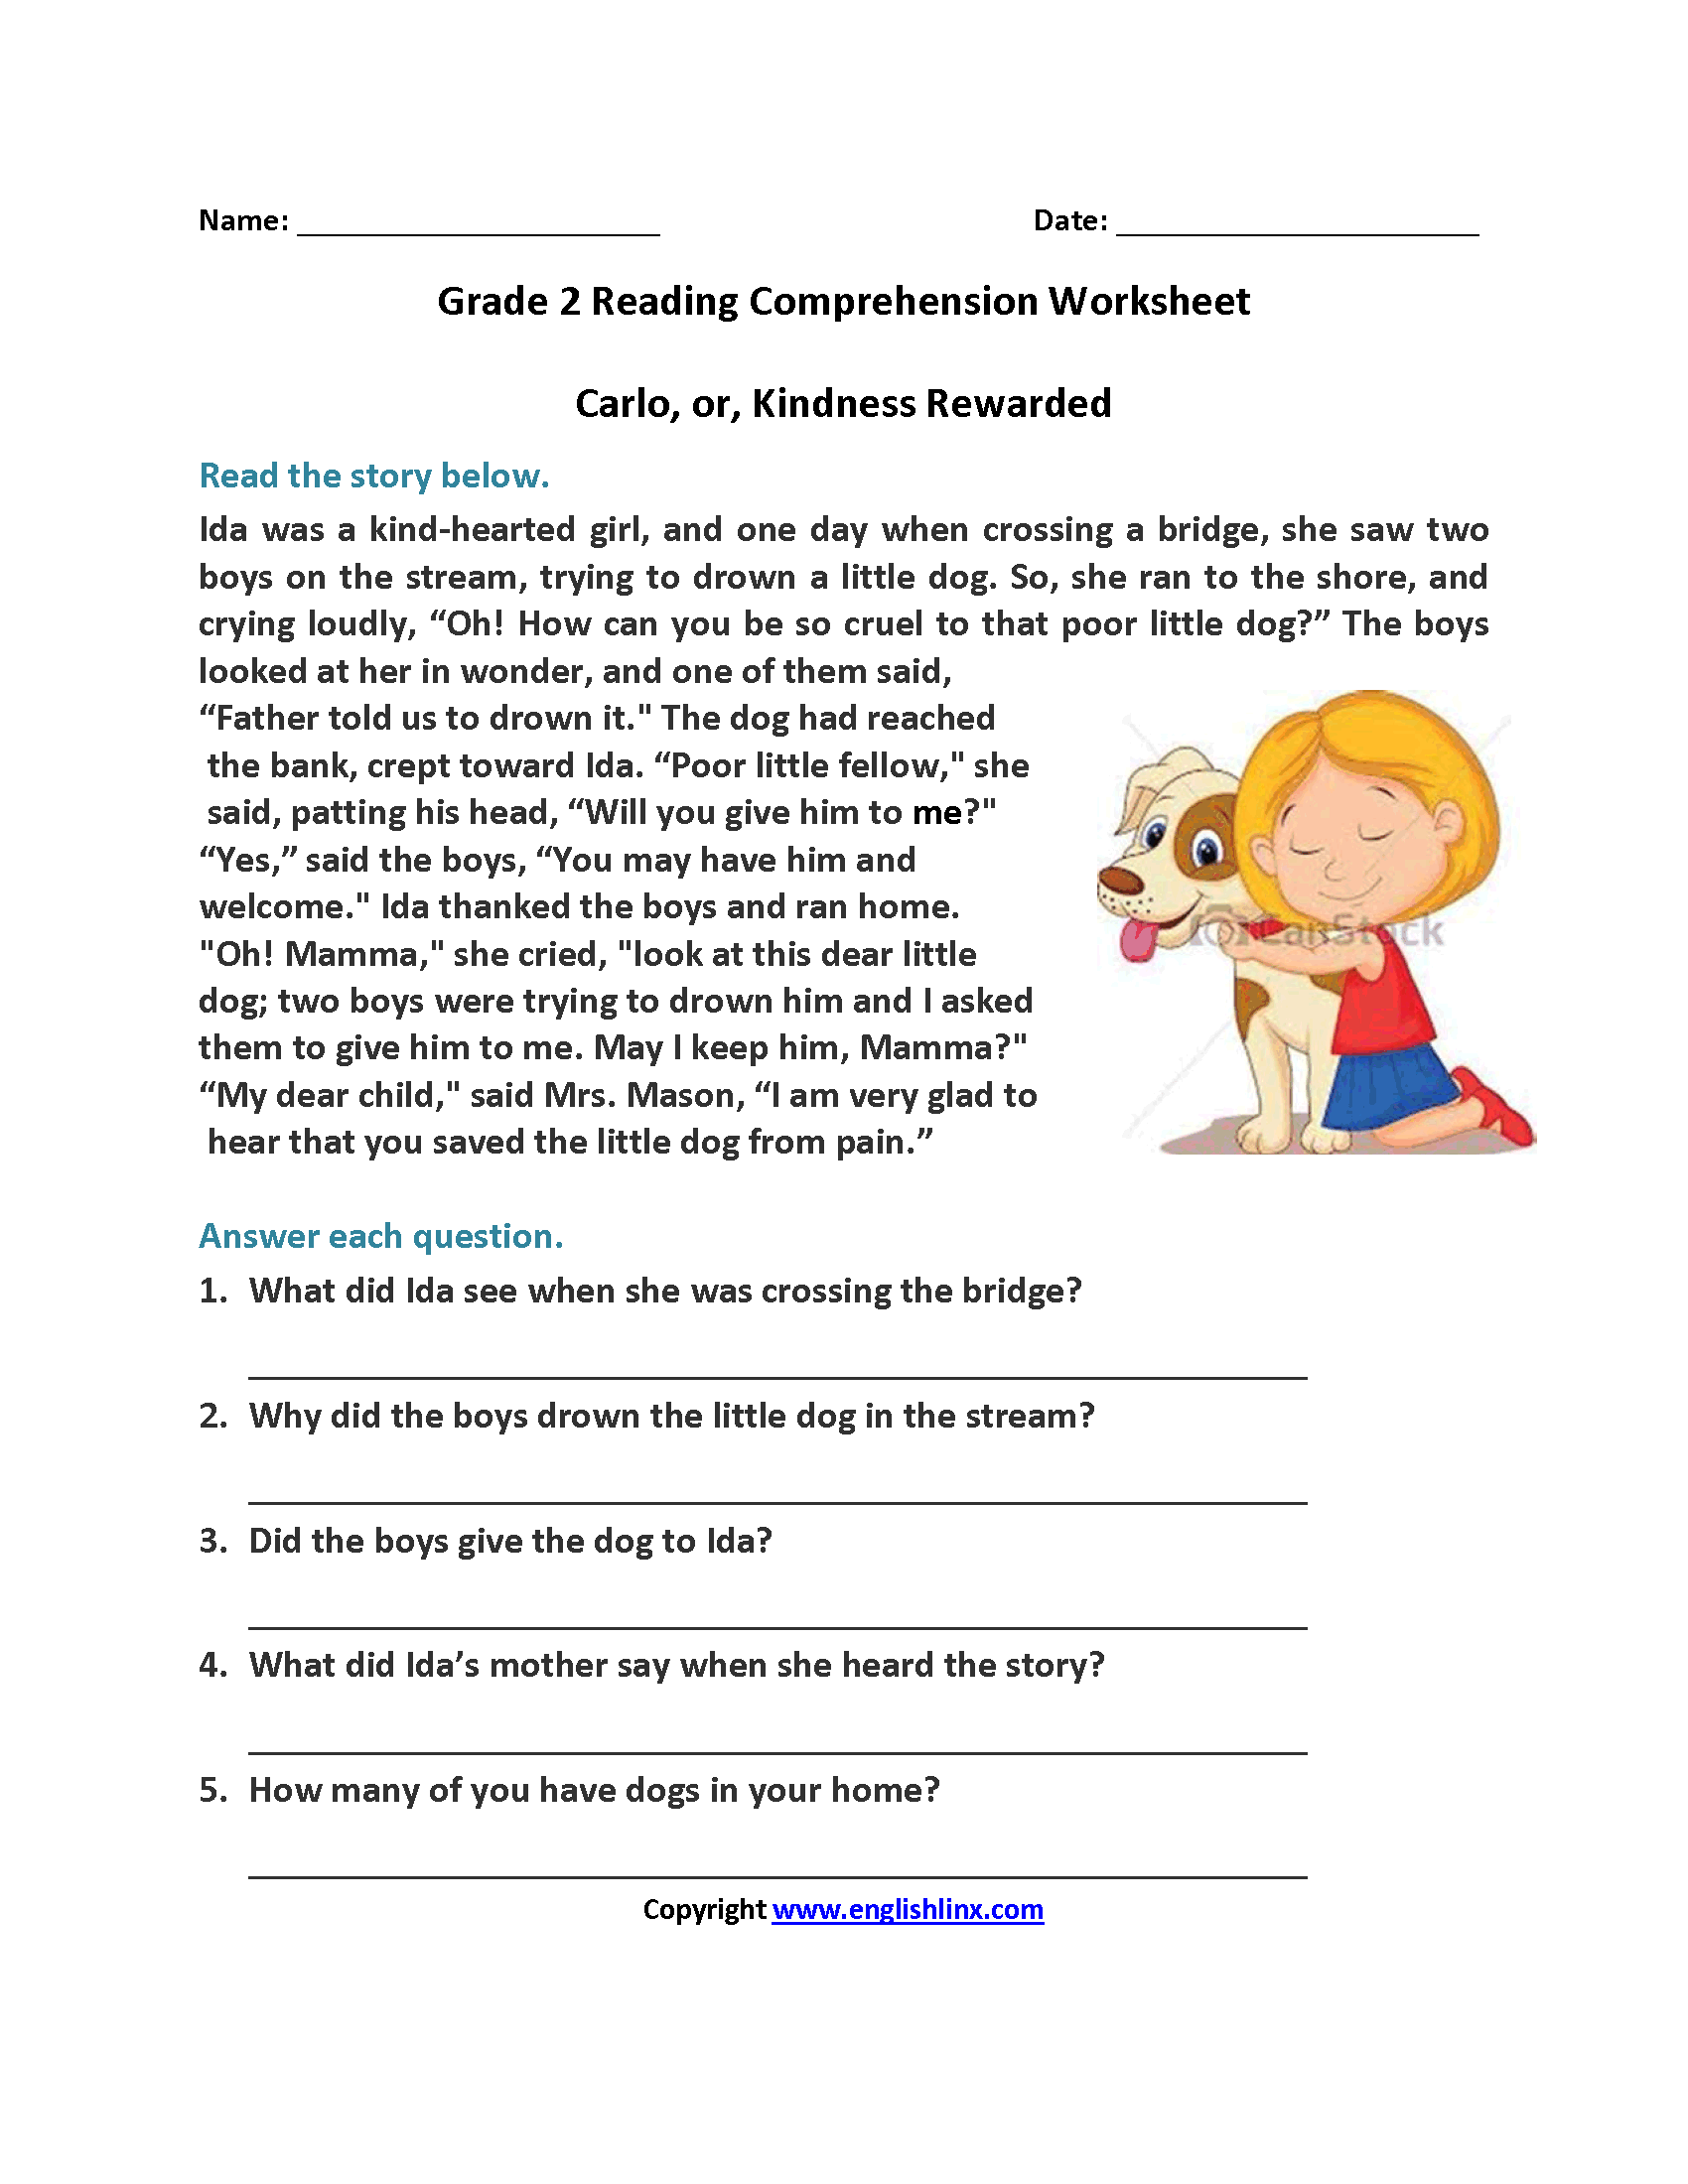 - Carlo Or Kindness Rewarded Second Grade Reading Worksheets